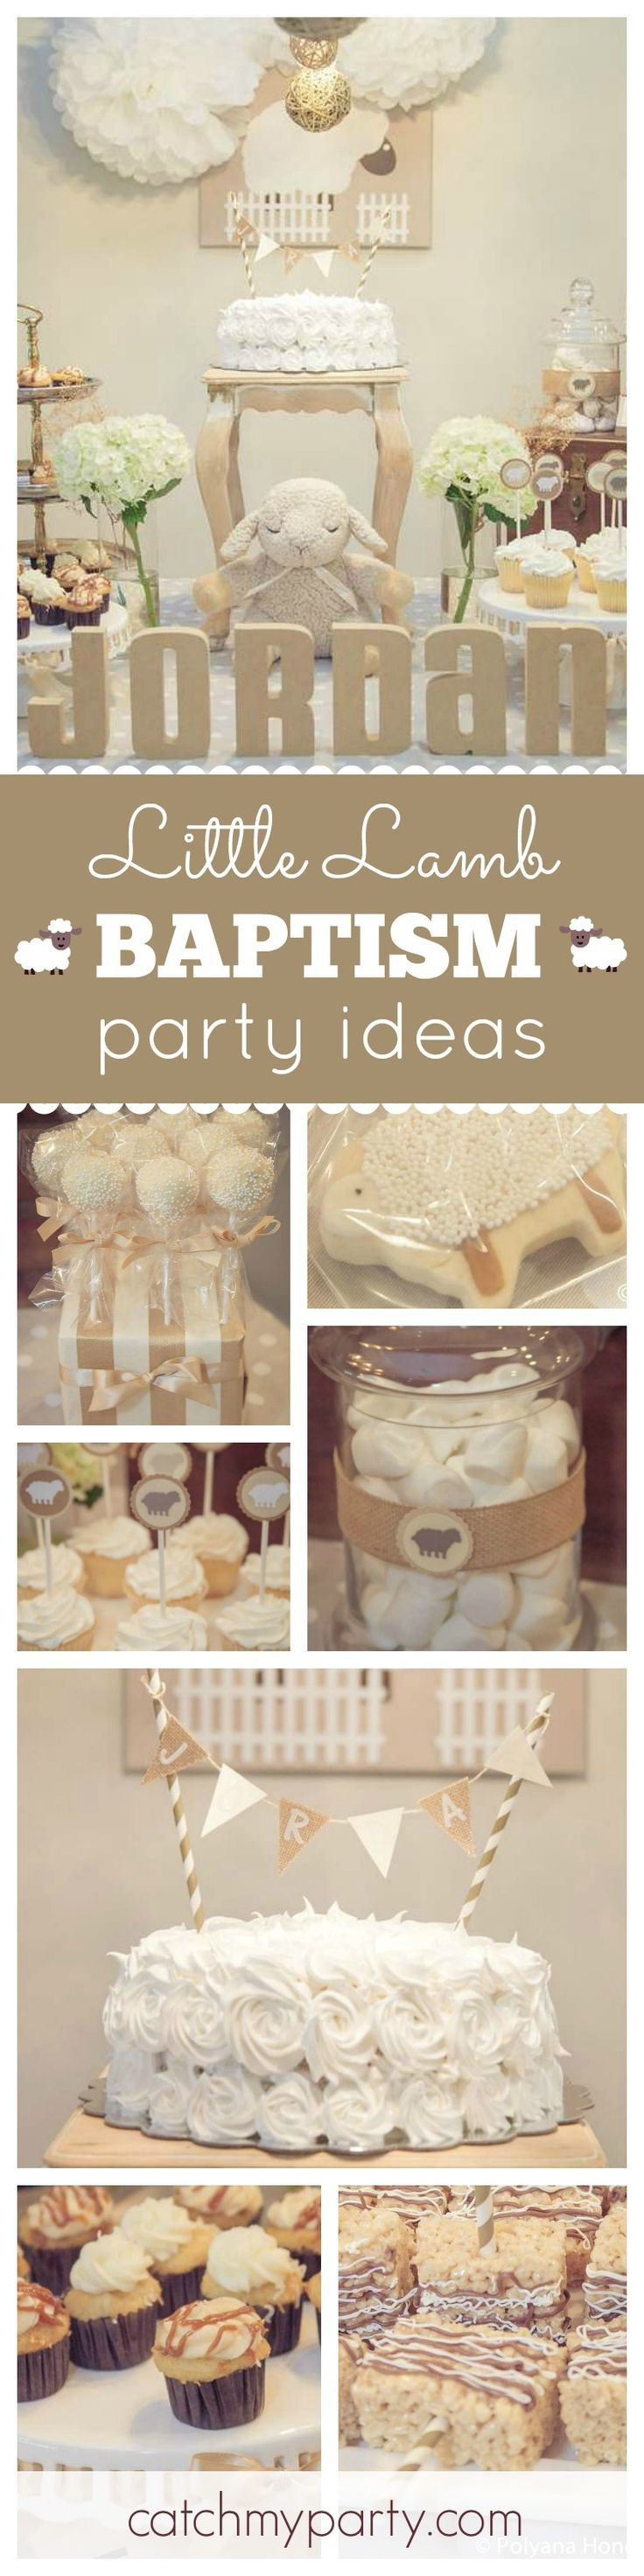 Check out this adorable Little Lamb themed Baptism celebration! The lamb cookies are too cute! See more party ideas at CatchMyParty.com